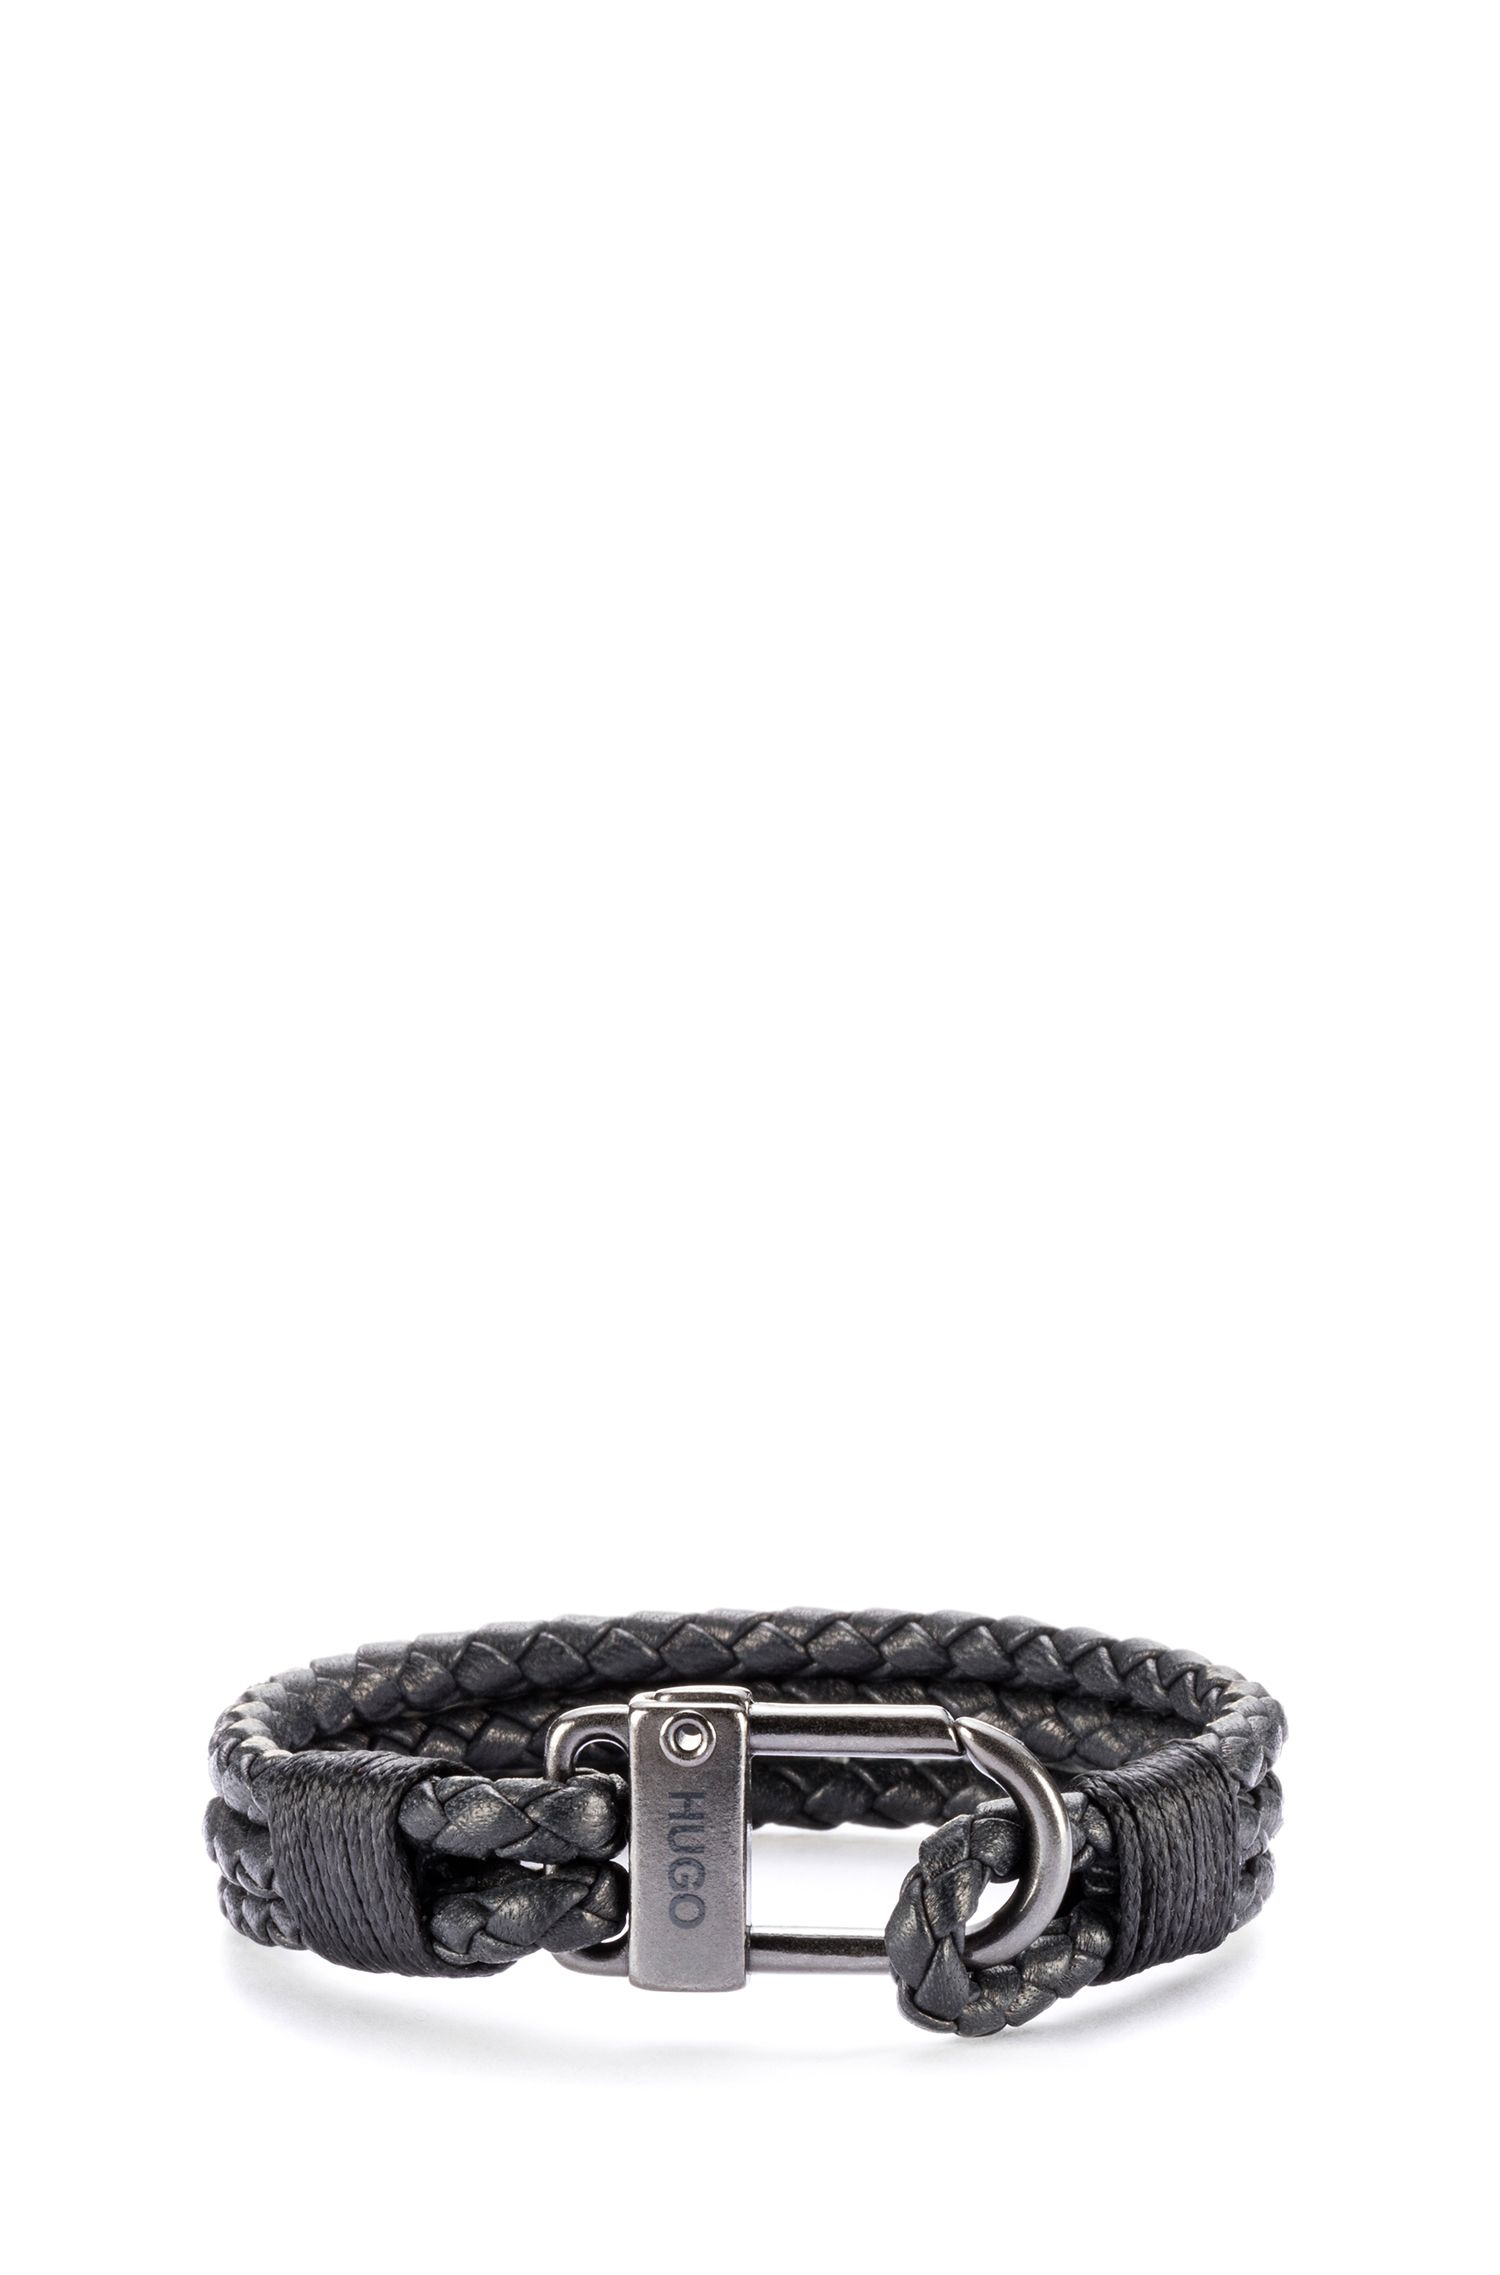 Braided Italian leather bracelet with carabiner fastening